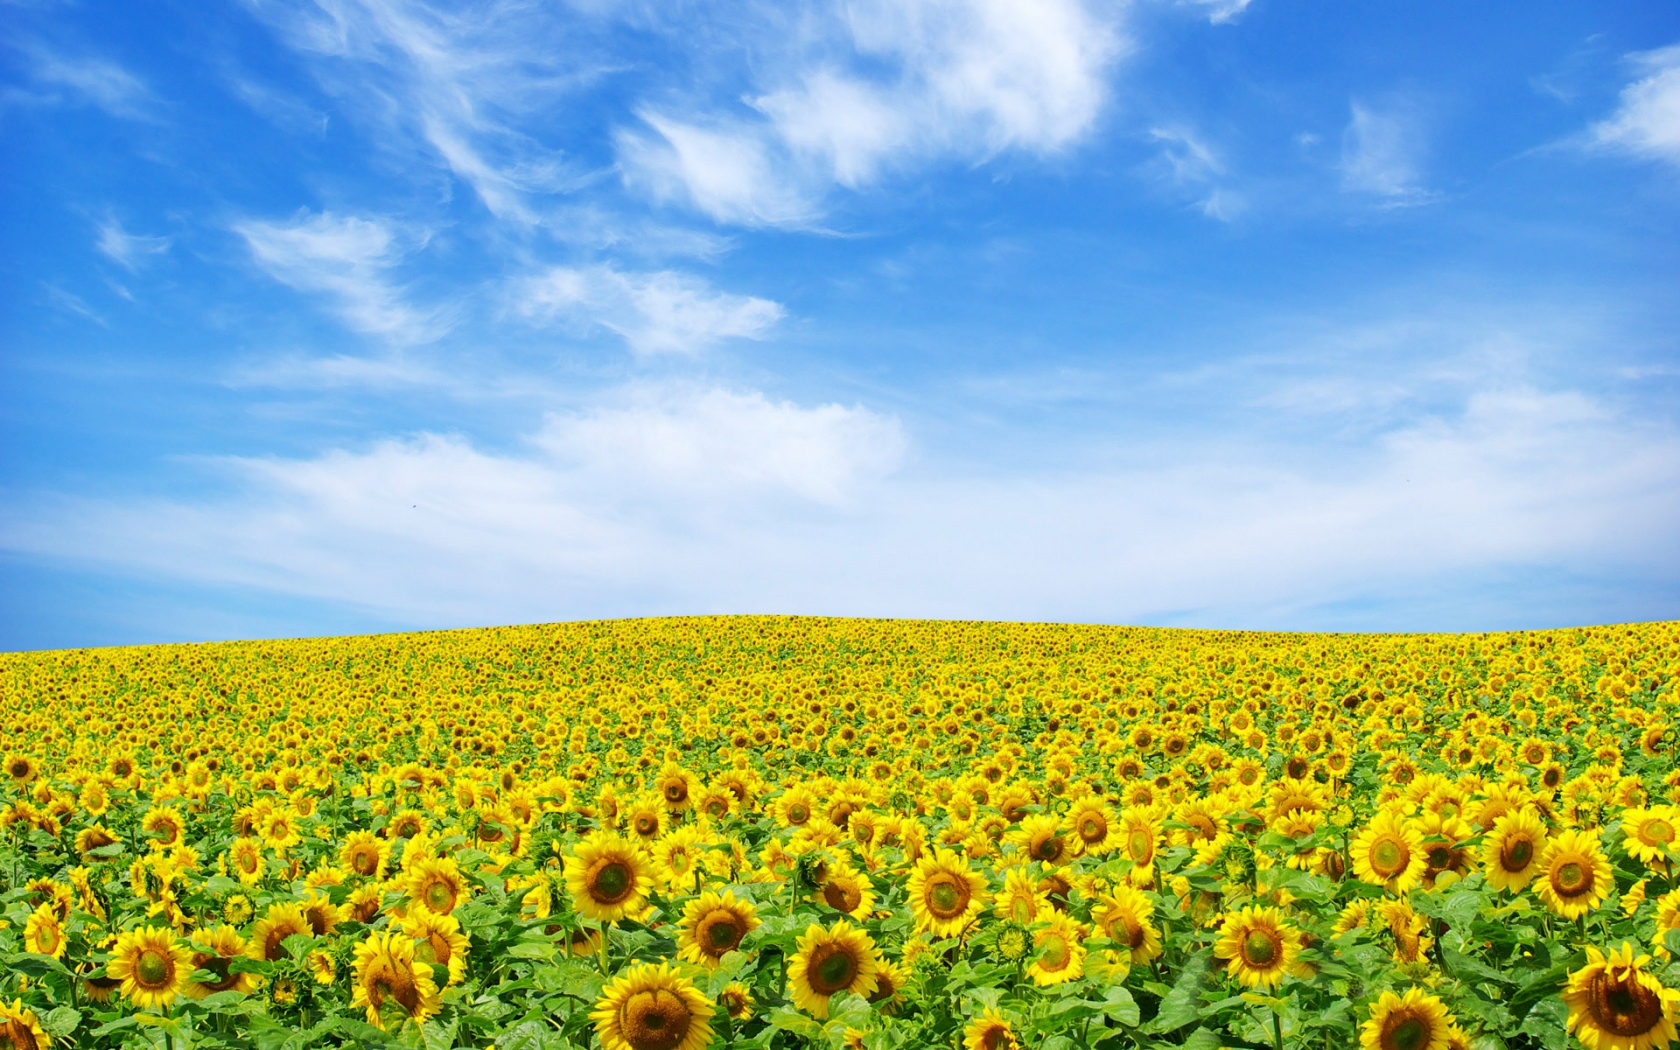 Sunflower landscape 4185688 1920x1200 all for desktop for Landscape images